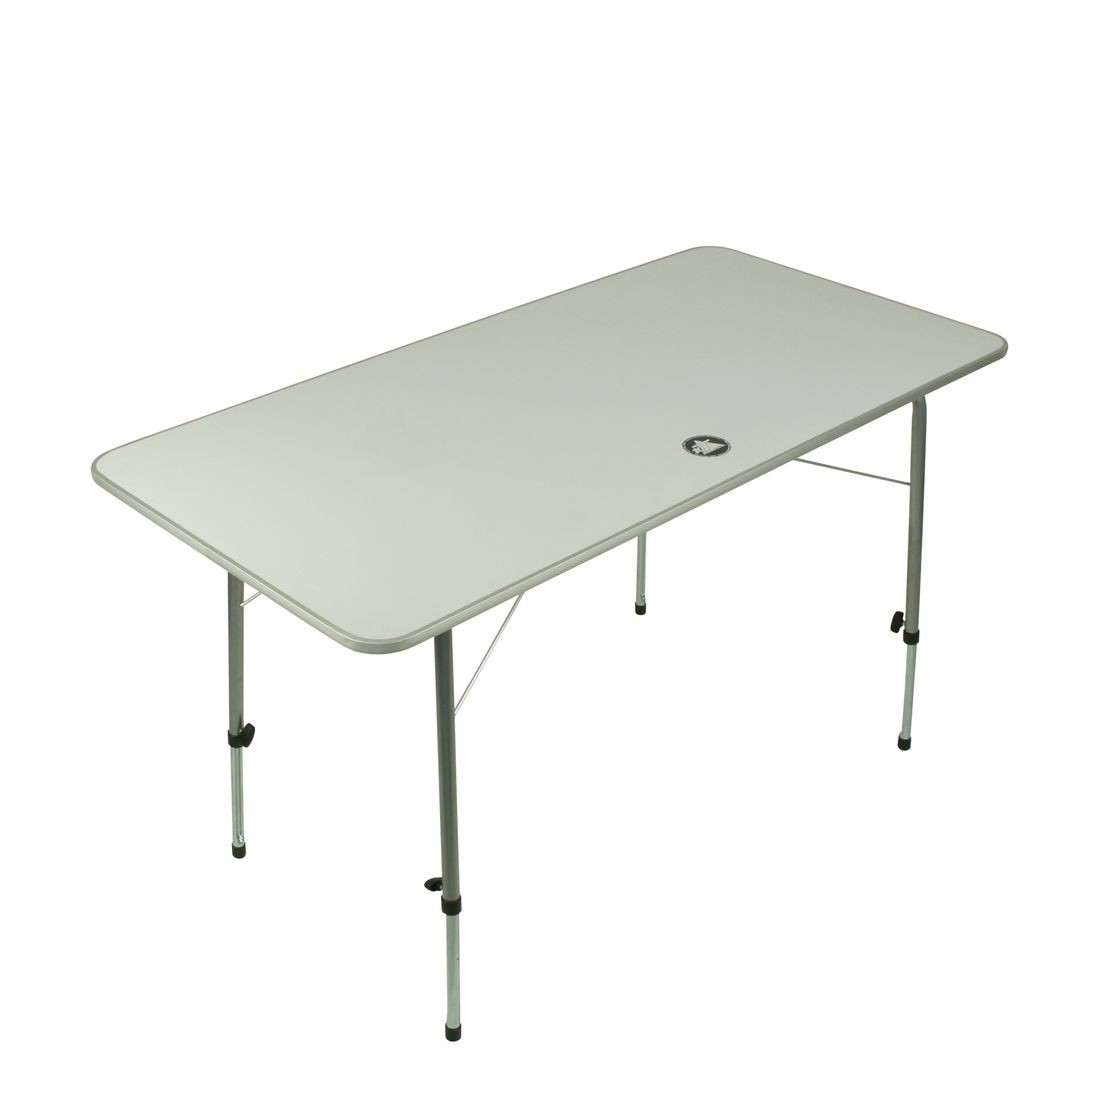 10t Flaprack Double Camping Foldable Table 120x60 Cm Stable Table Top Telescopic Legs